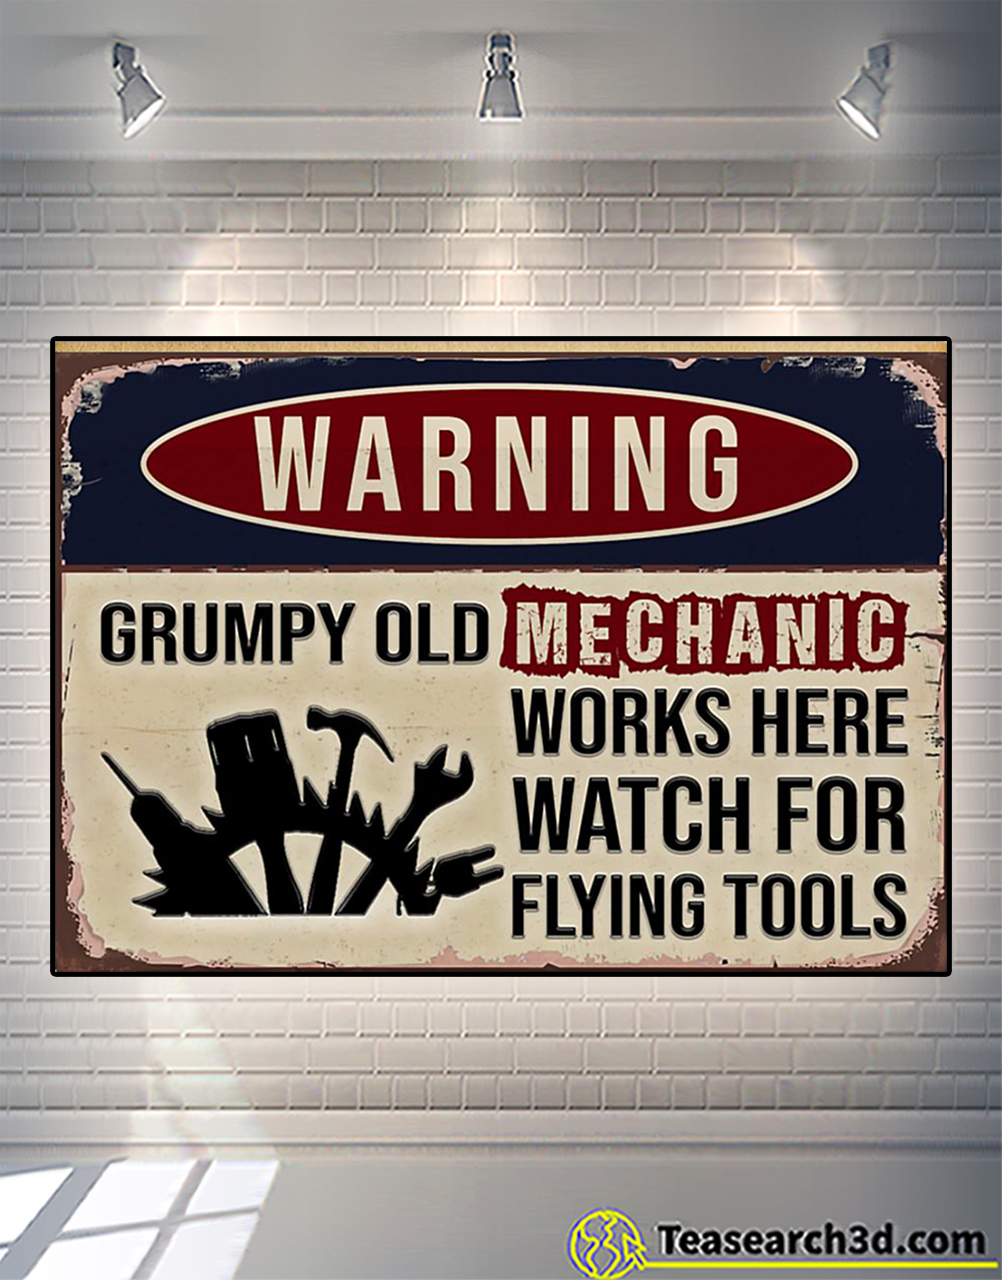 Warning grumpy old mechanic works here watch for flying tool poster